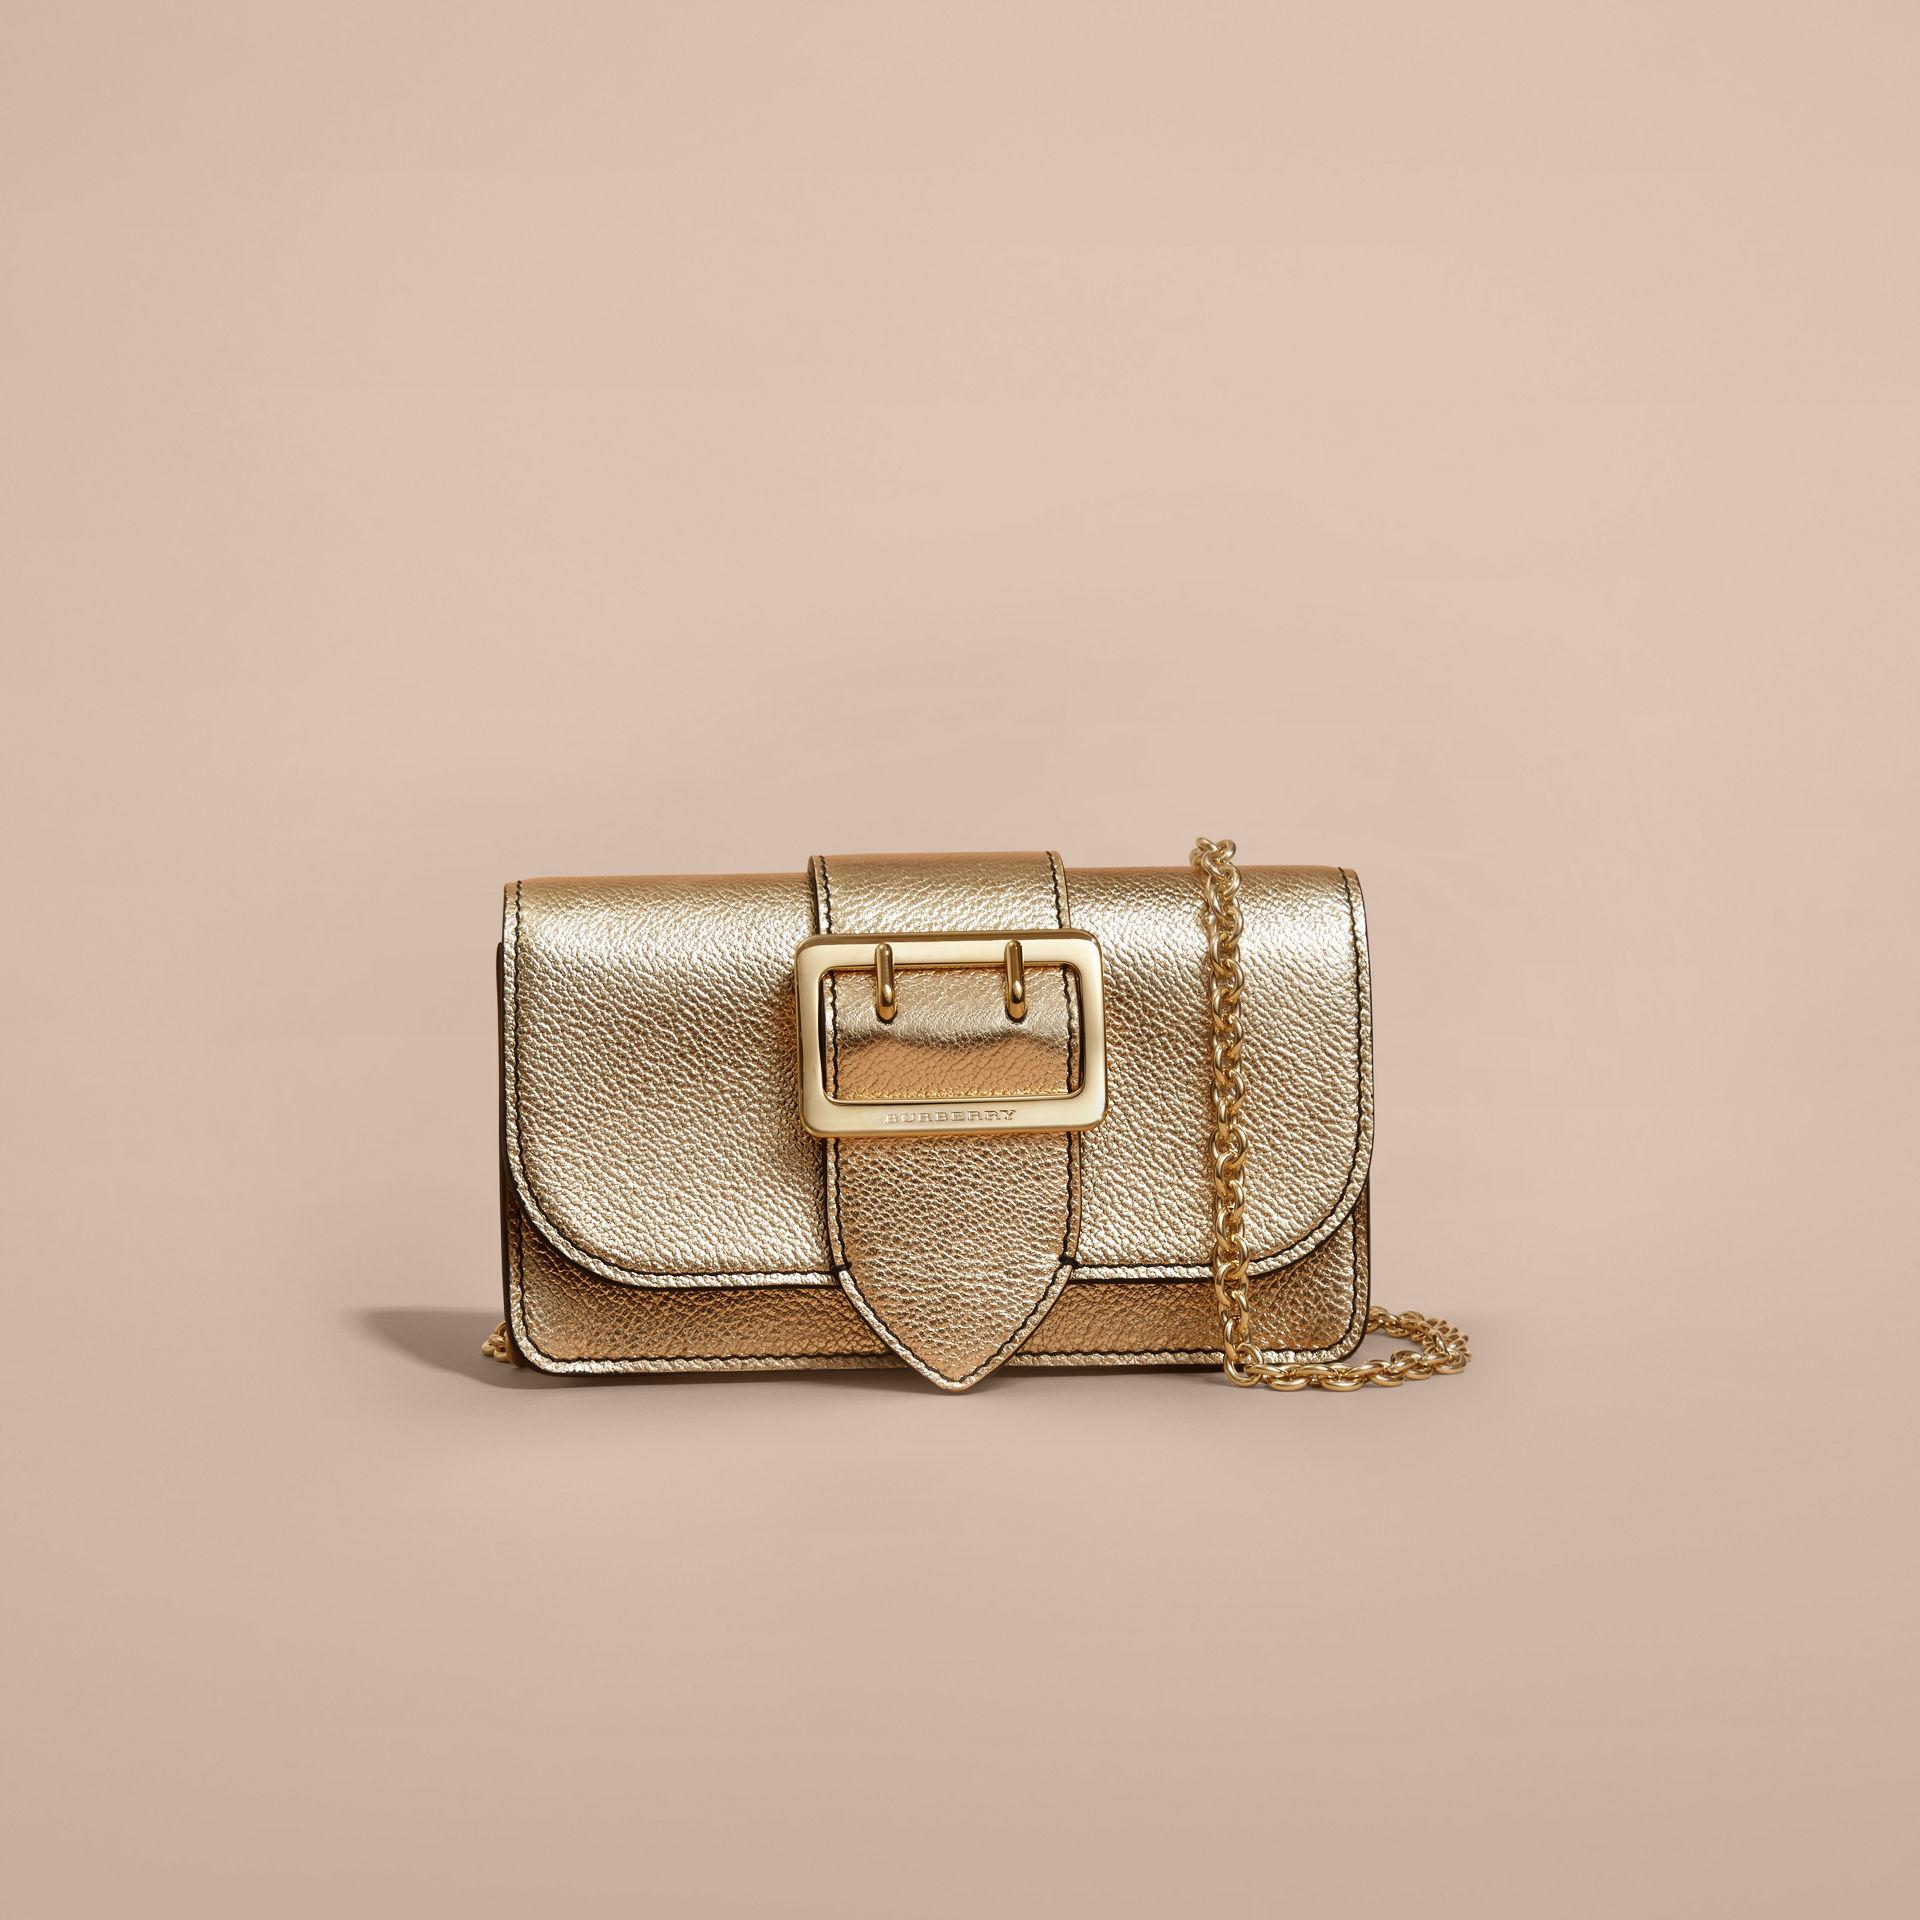 2cff251d3e9 Burberry The Mini Buckle Bag In Metallic Grainy Leather Gold in ...